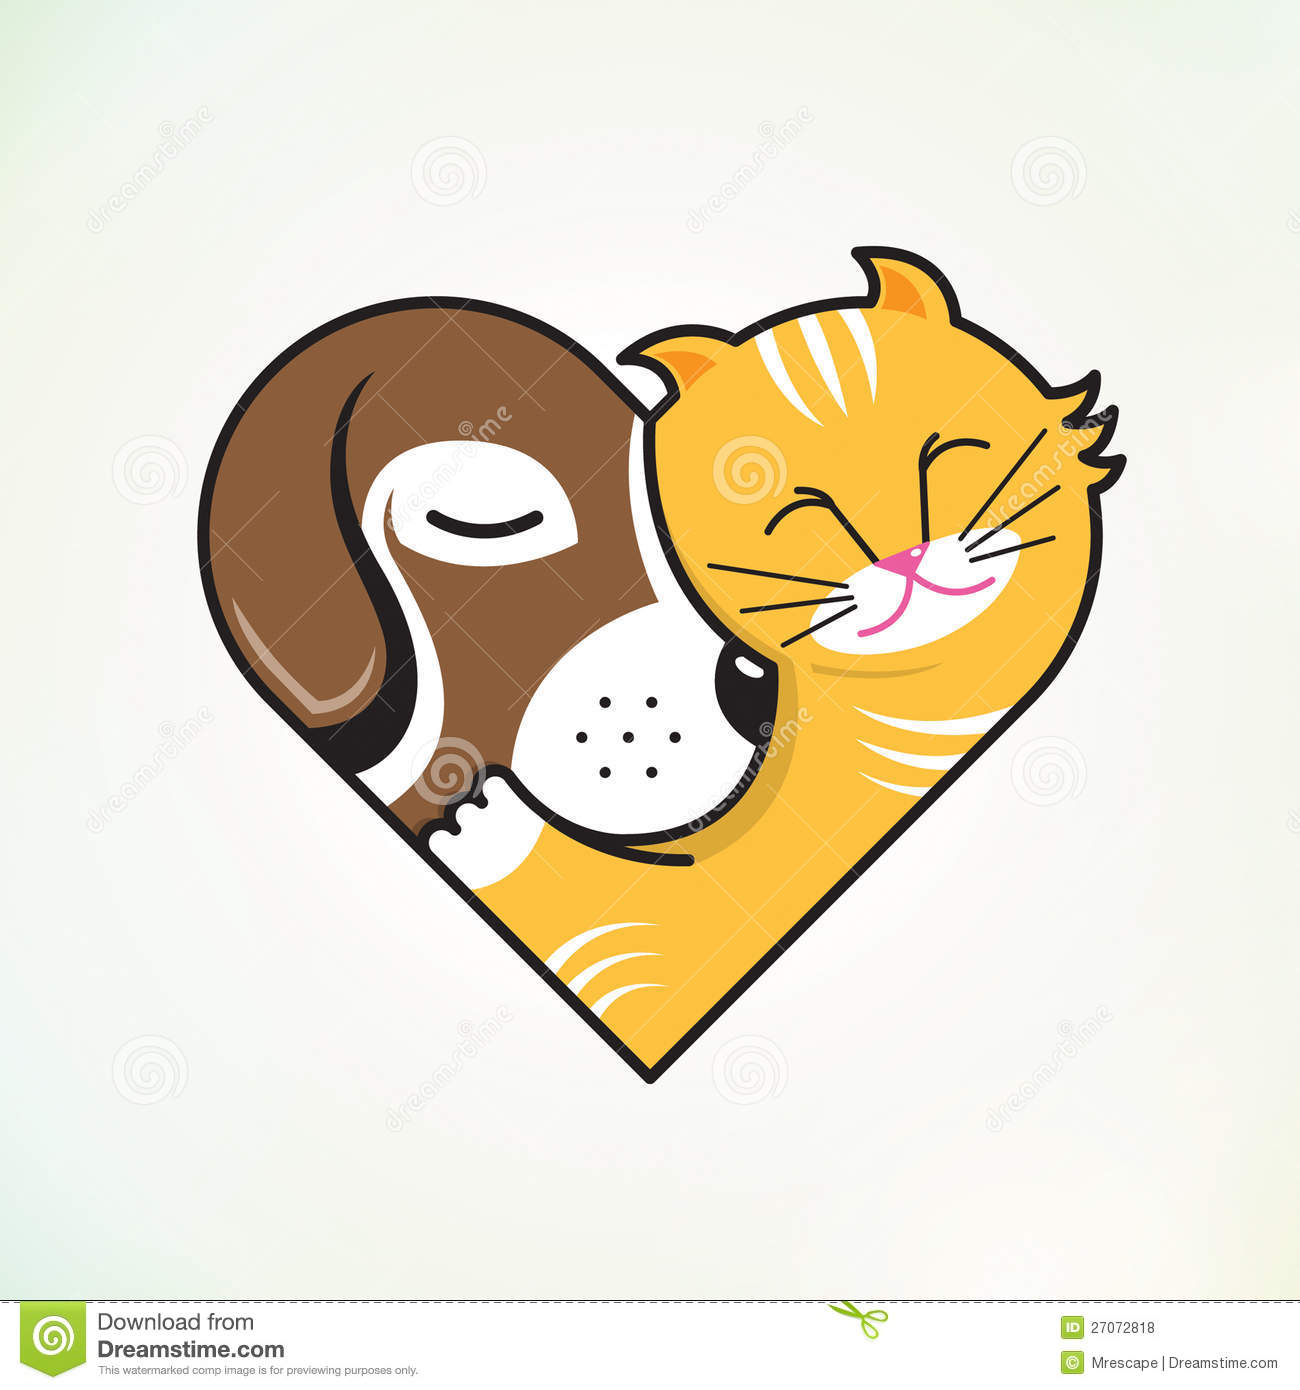 Cat And Dog Love Clipart.